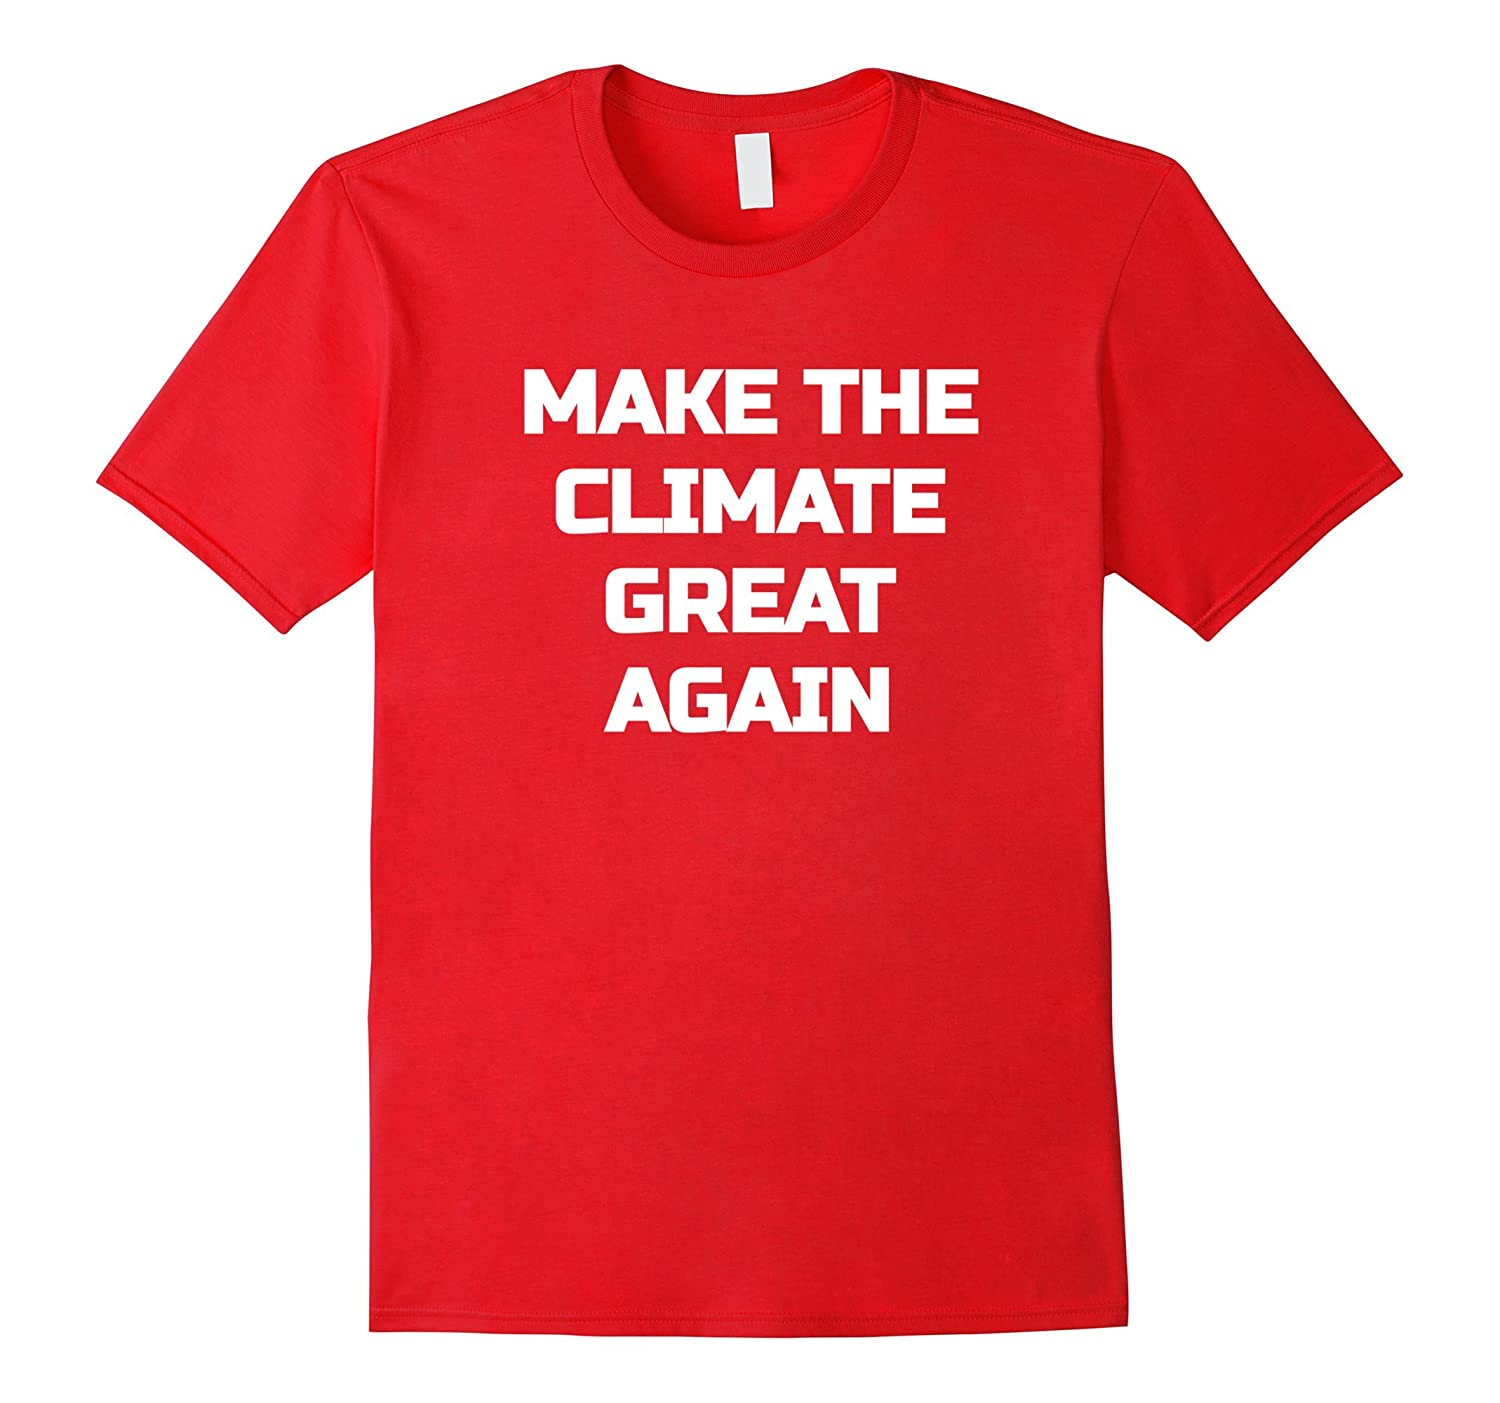 Earth day climate change t shirt make the climate great The great t shirt